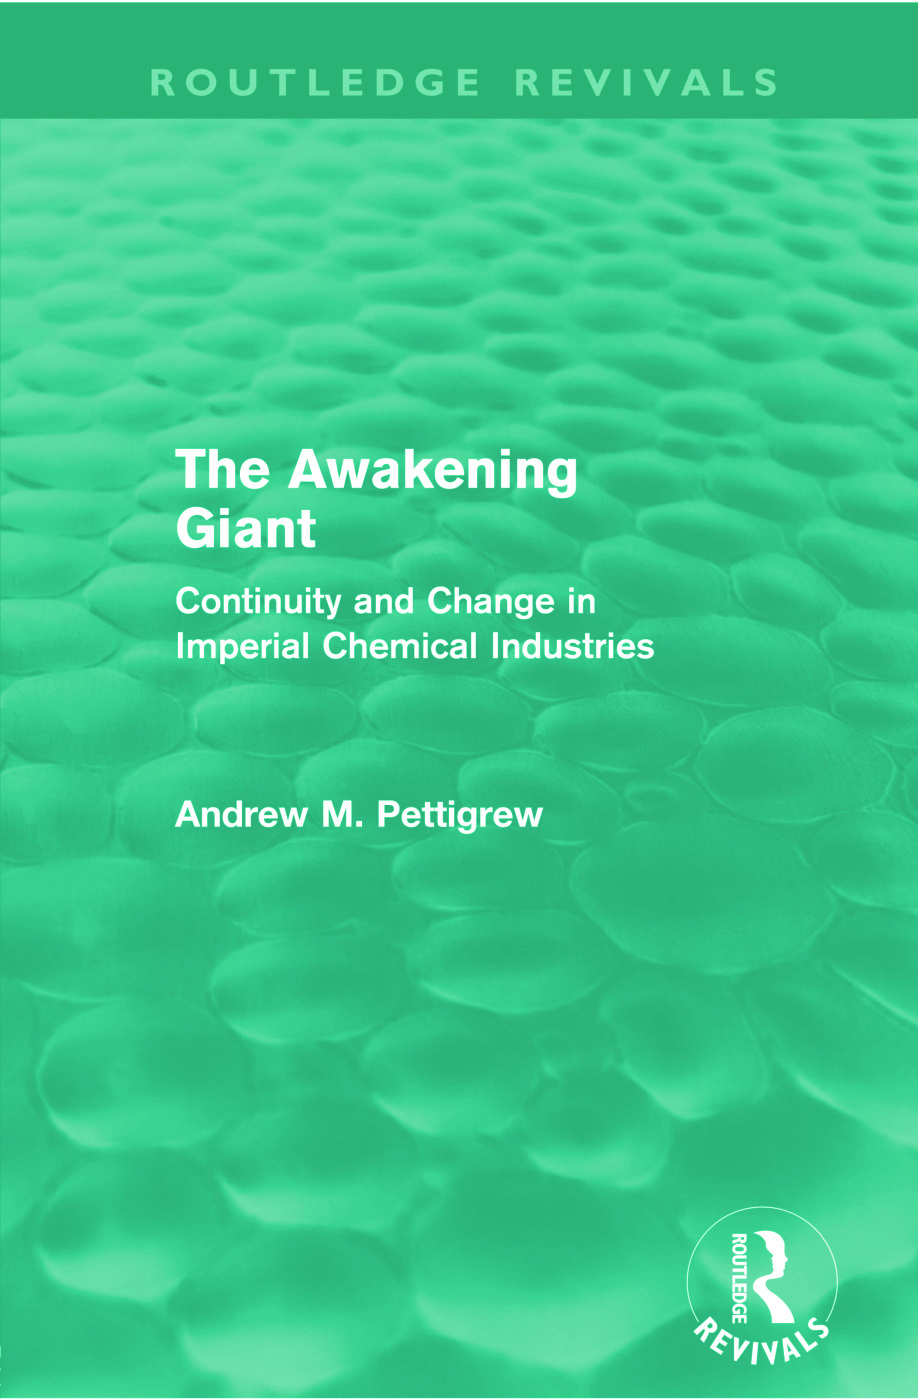 The Awakening Giant (Routledge Revivals): Continuity and Change in ICI (Paperback) book cover